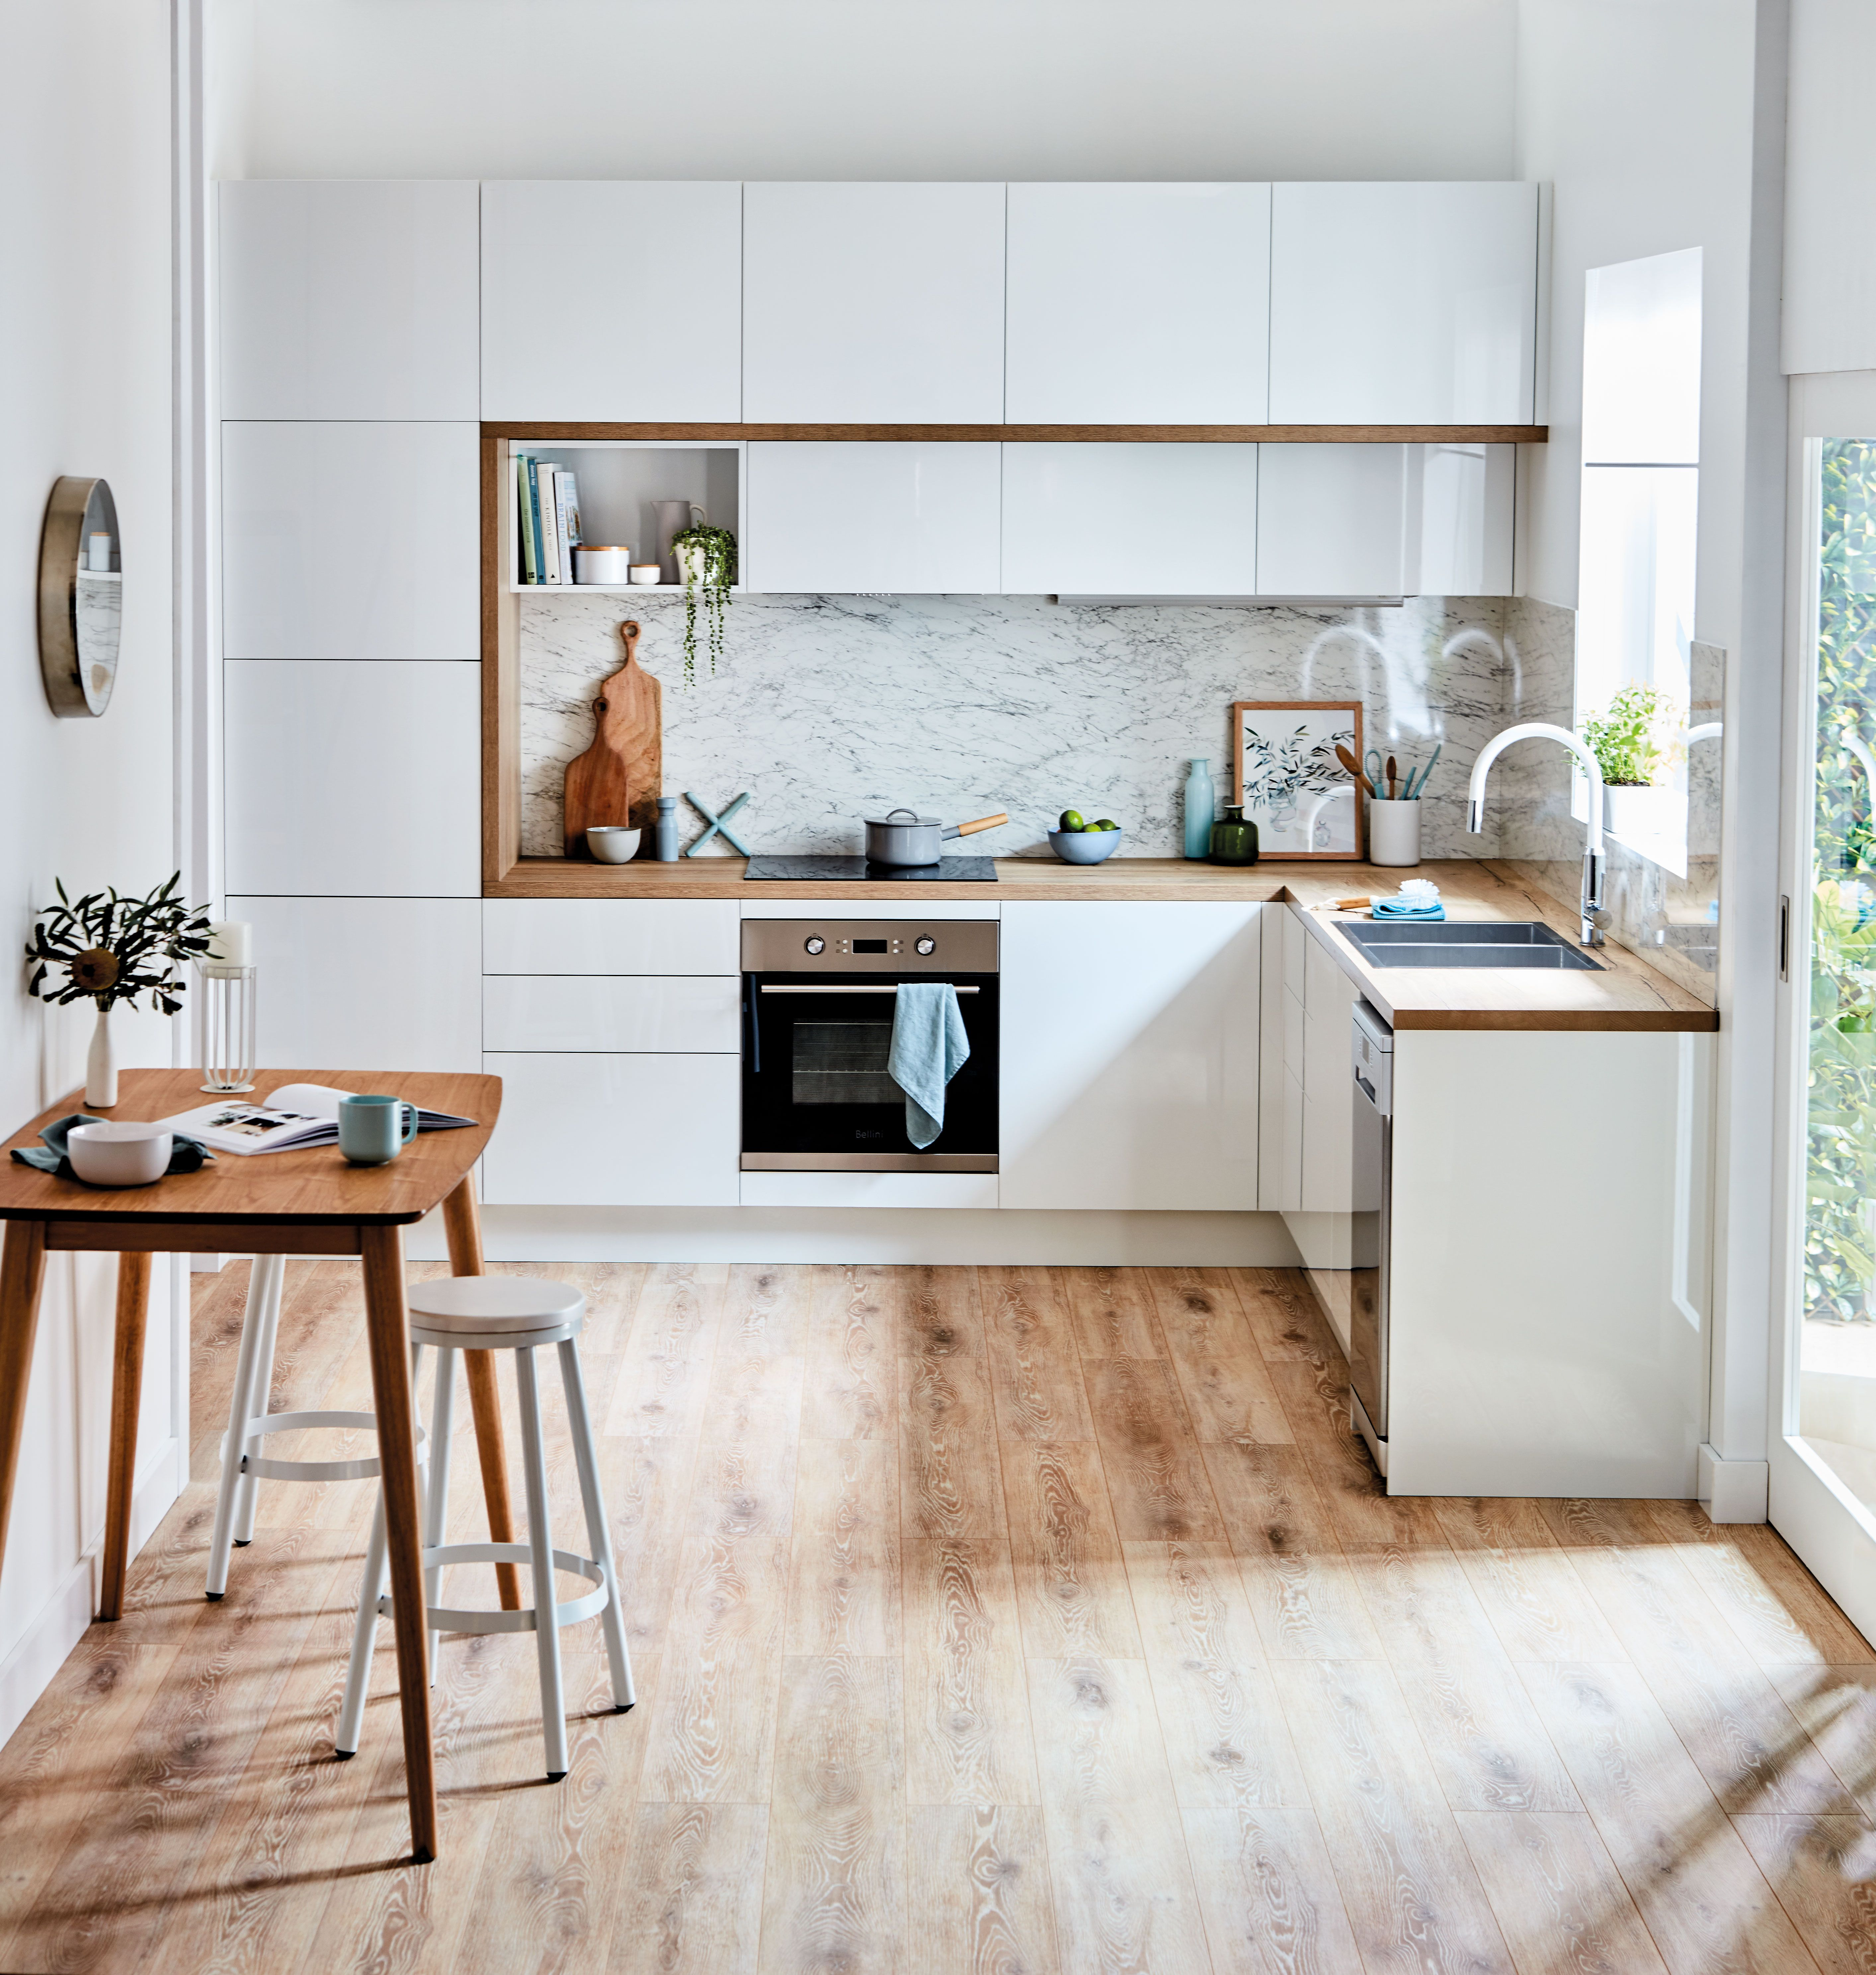 Simply scandi kitchen inspiration and ideas kaboodle